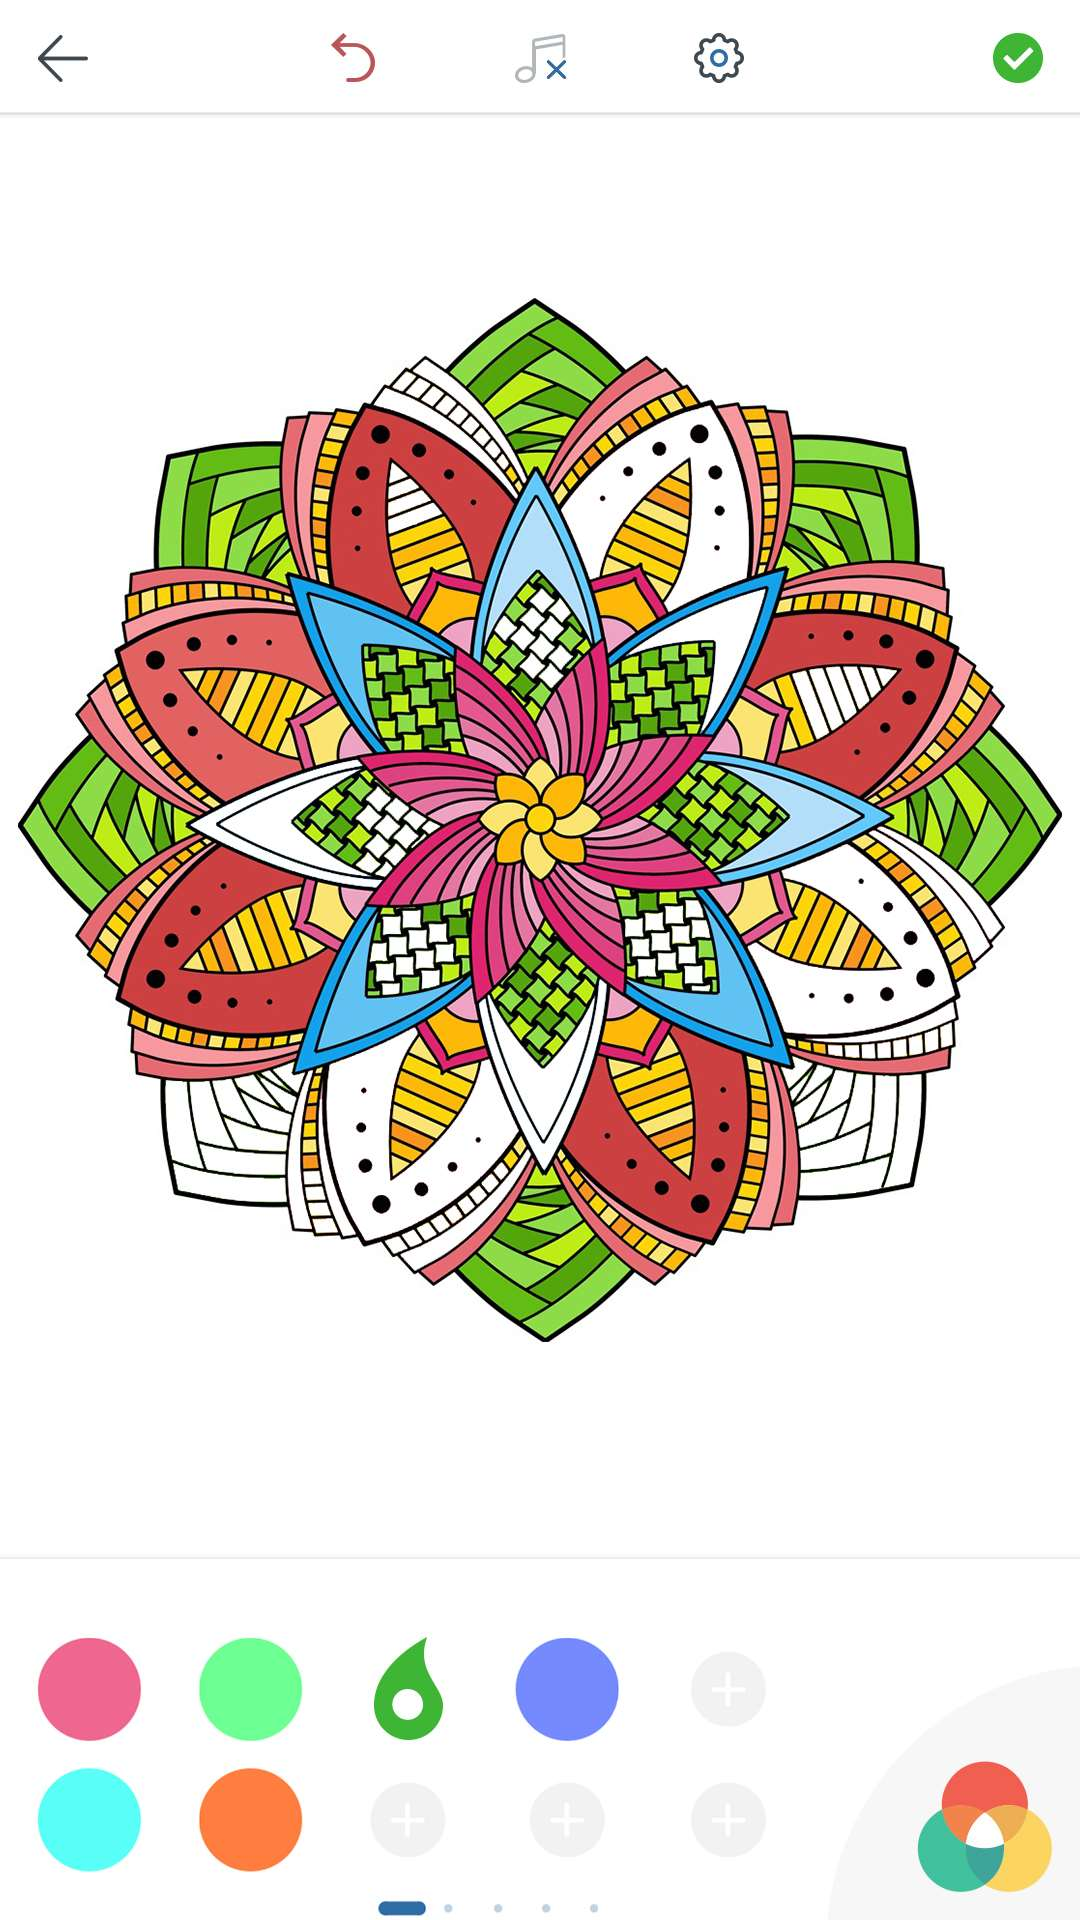 Colorista S ler besides Coloring Hamster moreover Hand Drawn Ink Background Doodles Flowers Leaves Nature Design Relax Meditation Vector Pattern Black White furthermore Magic Mandala Coloring Pages Android Screenshot together with Coloring Book Page Christmas Cookies Black White Hand Drawn Illustration Mother Bunny Making Her Kids Home. on art coloring pages for adults